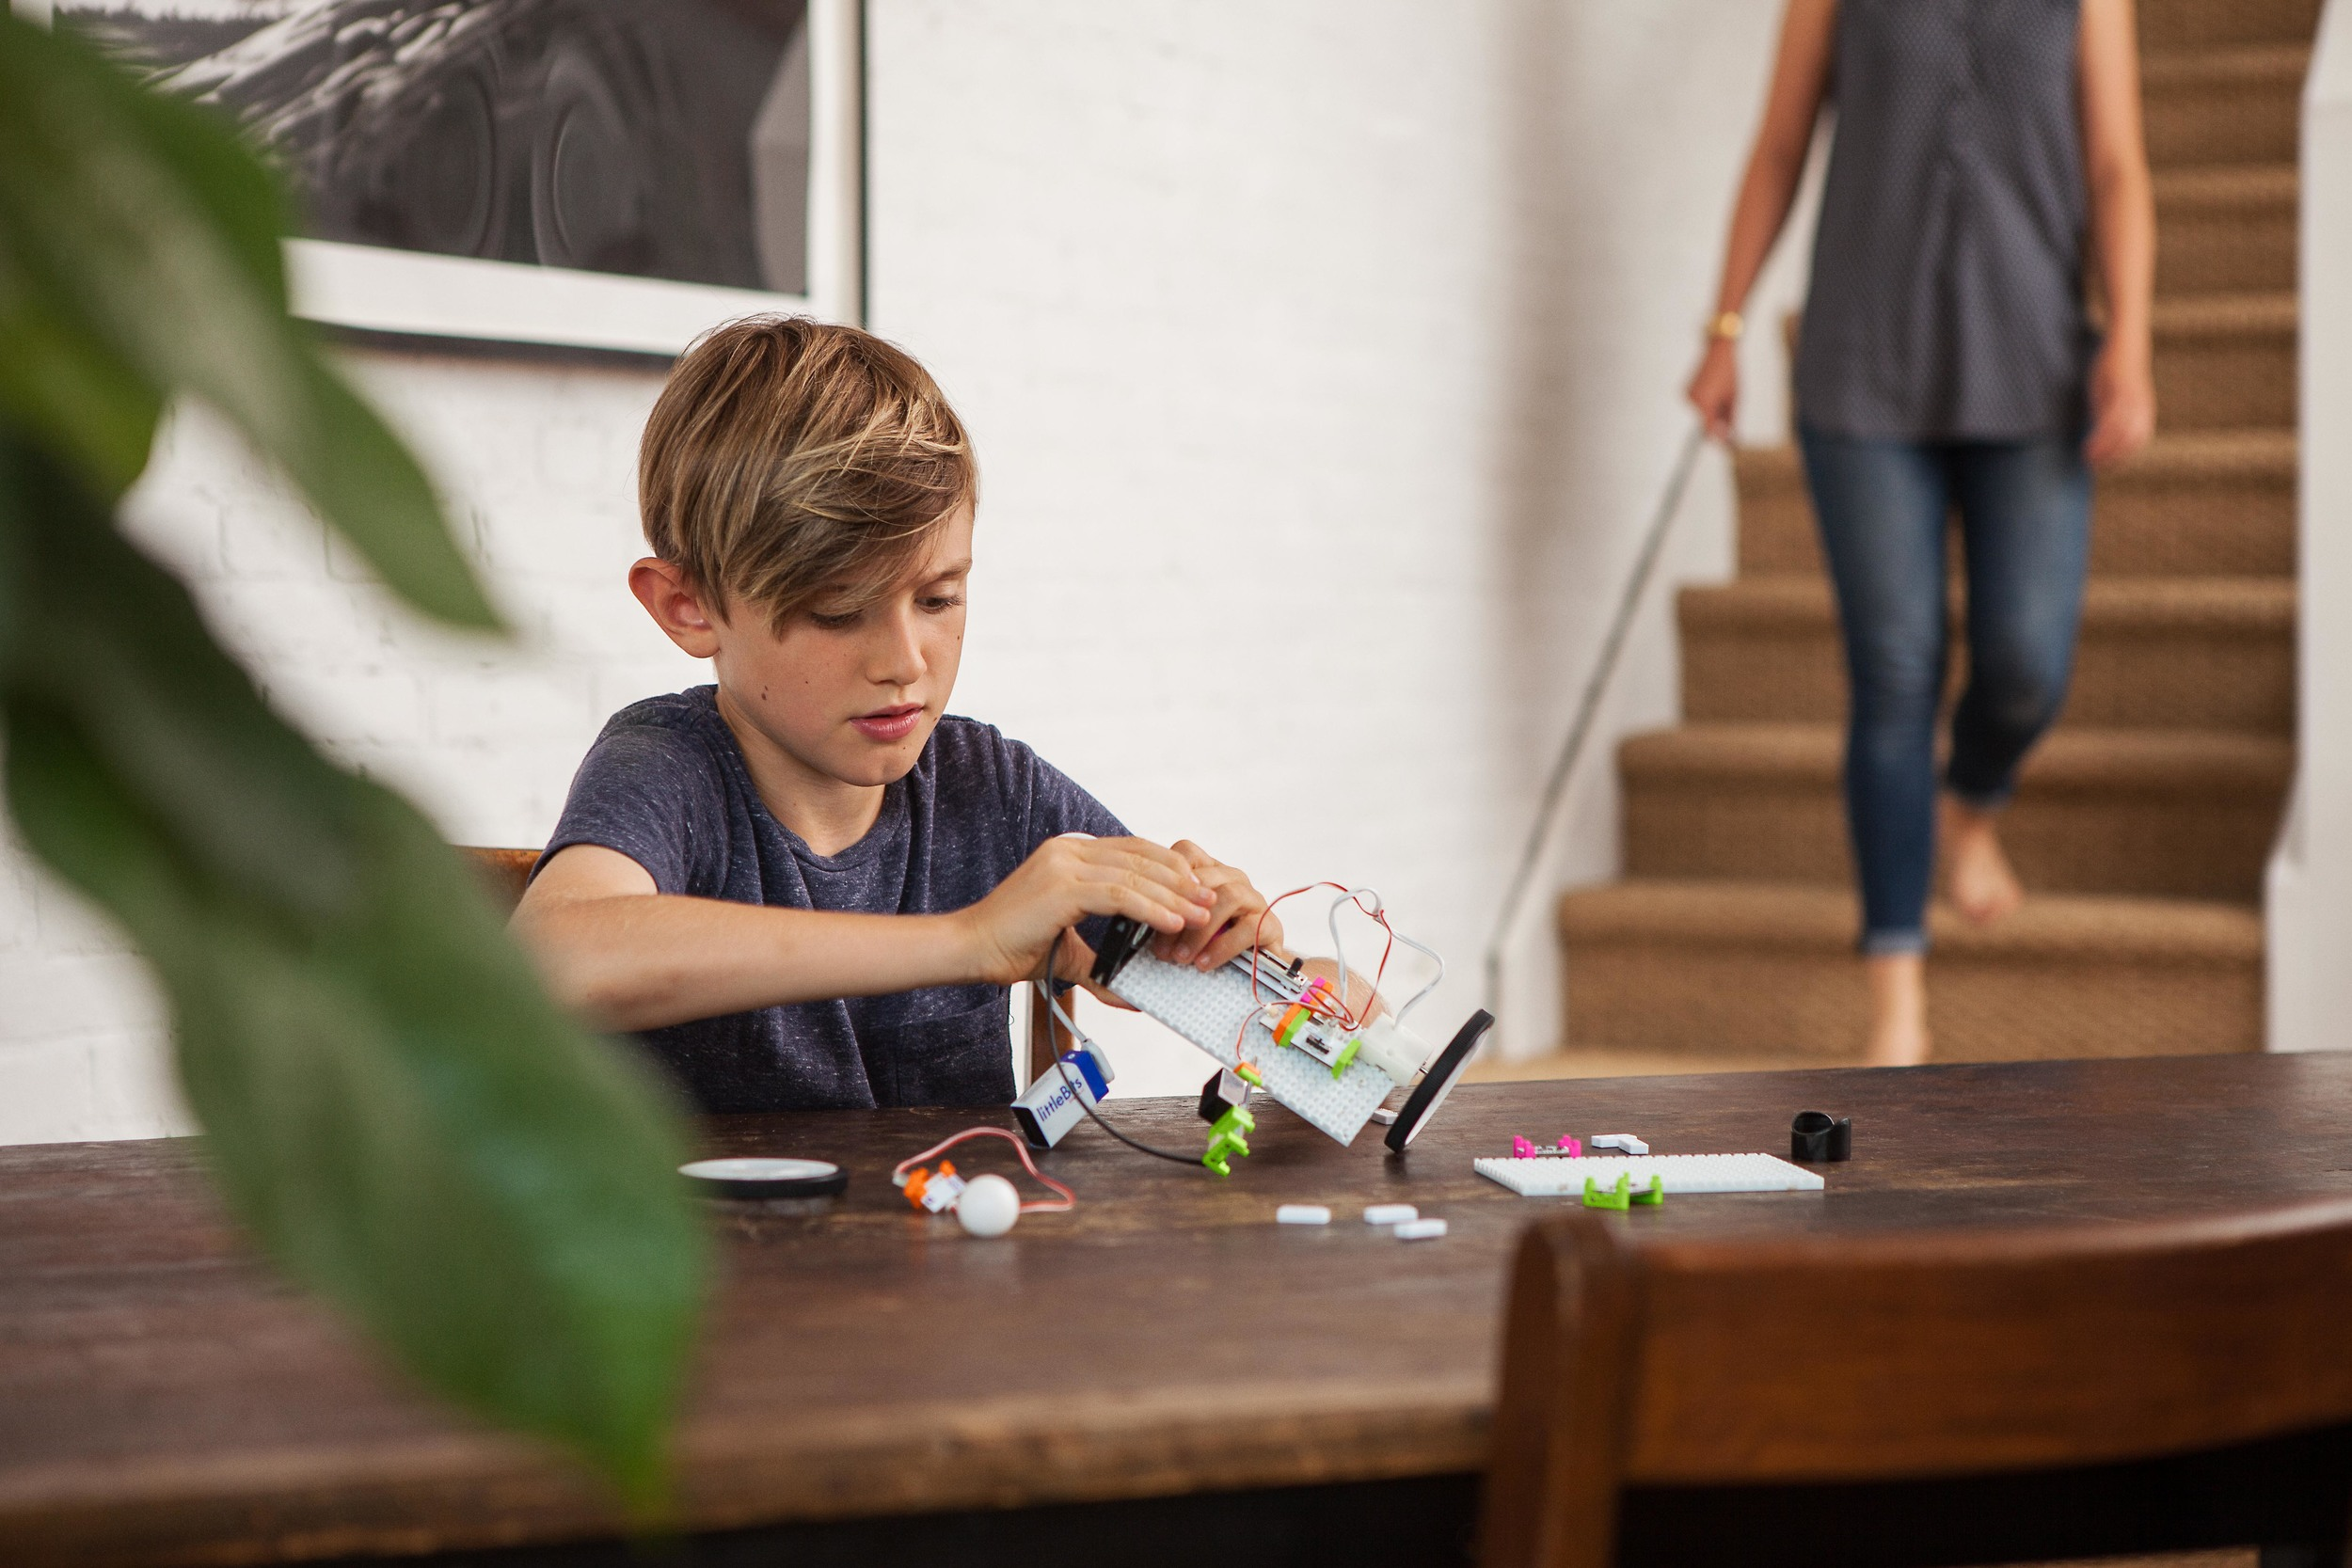 Littlebits_Lifestyle_July_01_20150691-KR.jpg